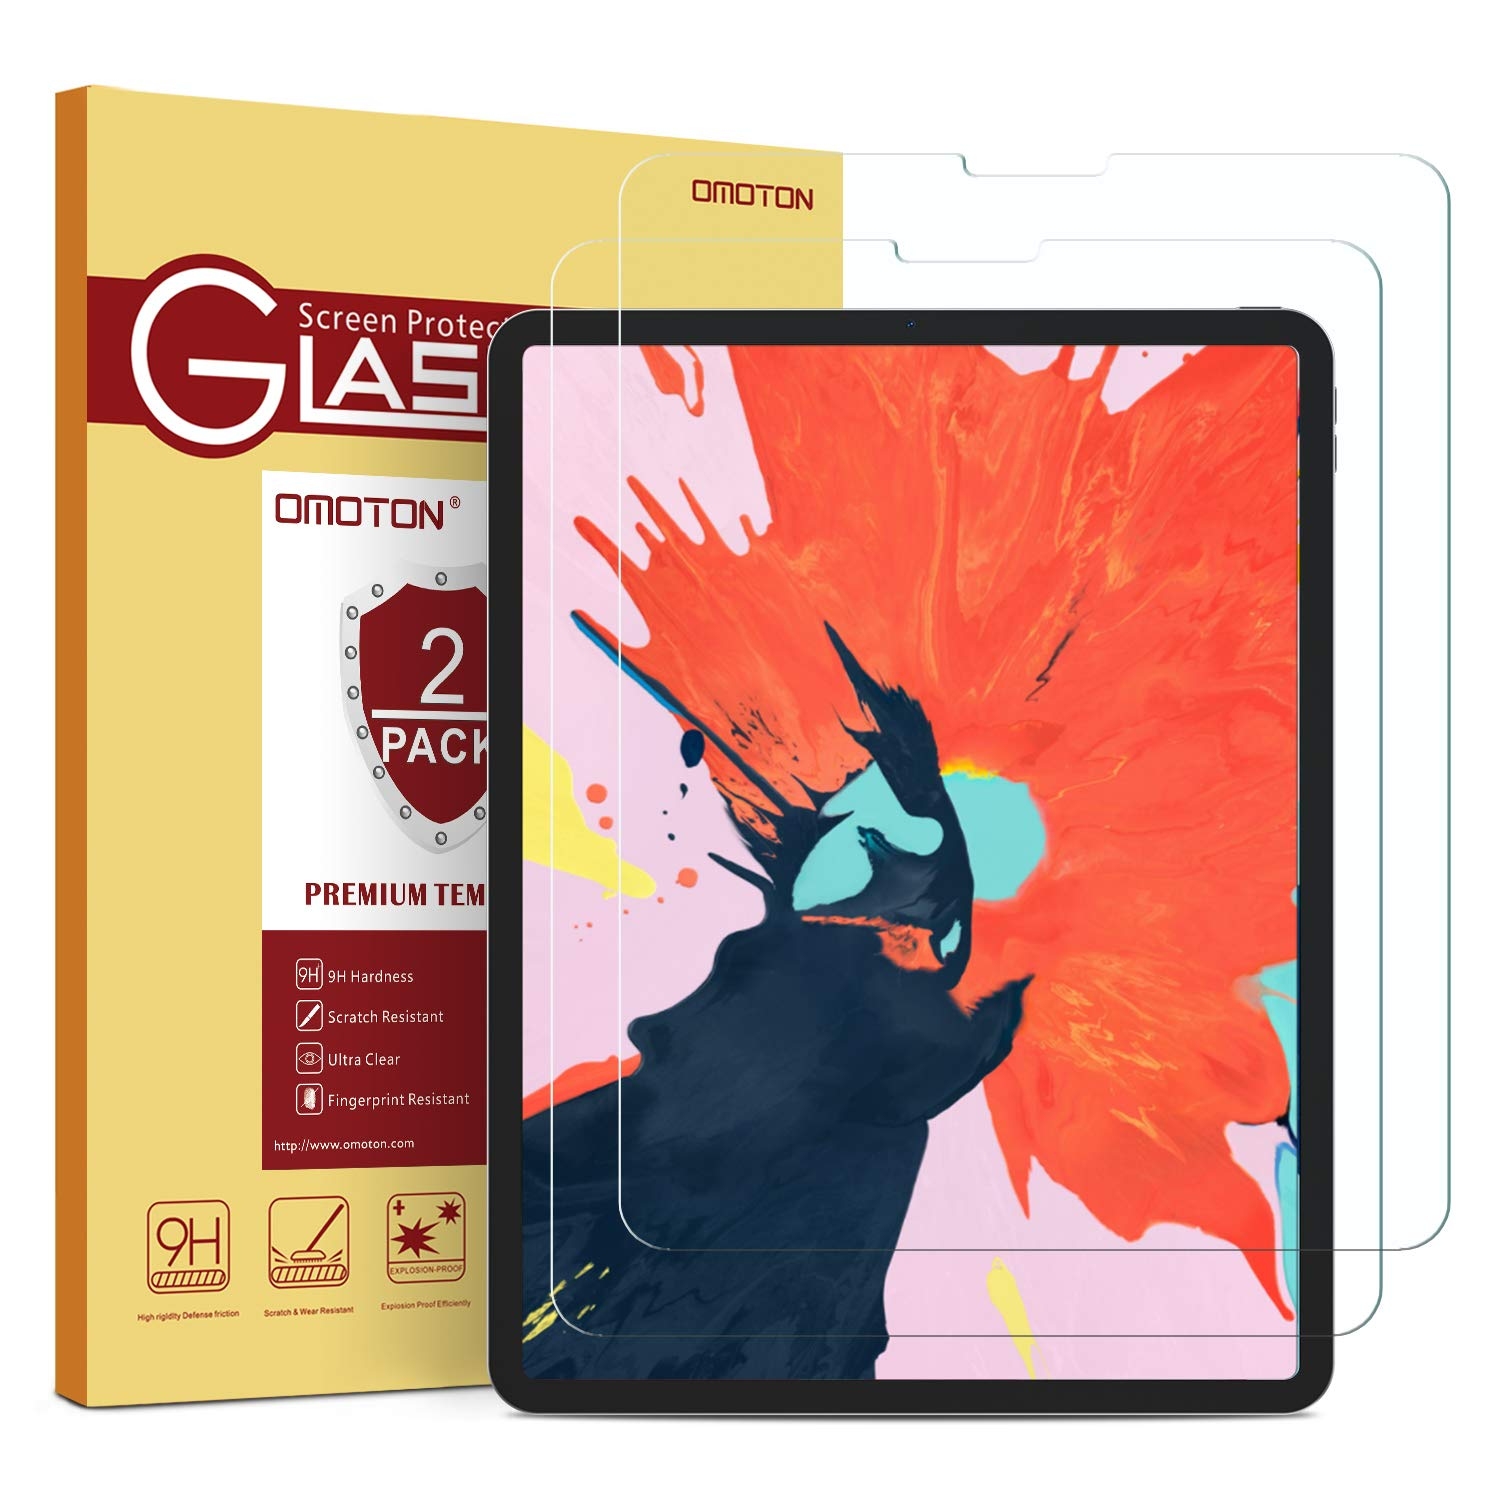 OMOTON Tempered Glass Screen Protector Compatible with All New All Screen iPad Pro 12.9-inch 2018 Release [2 Pack] Screen Protector for iPad Pro 12.9